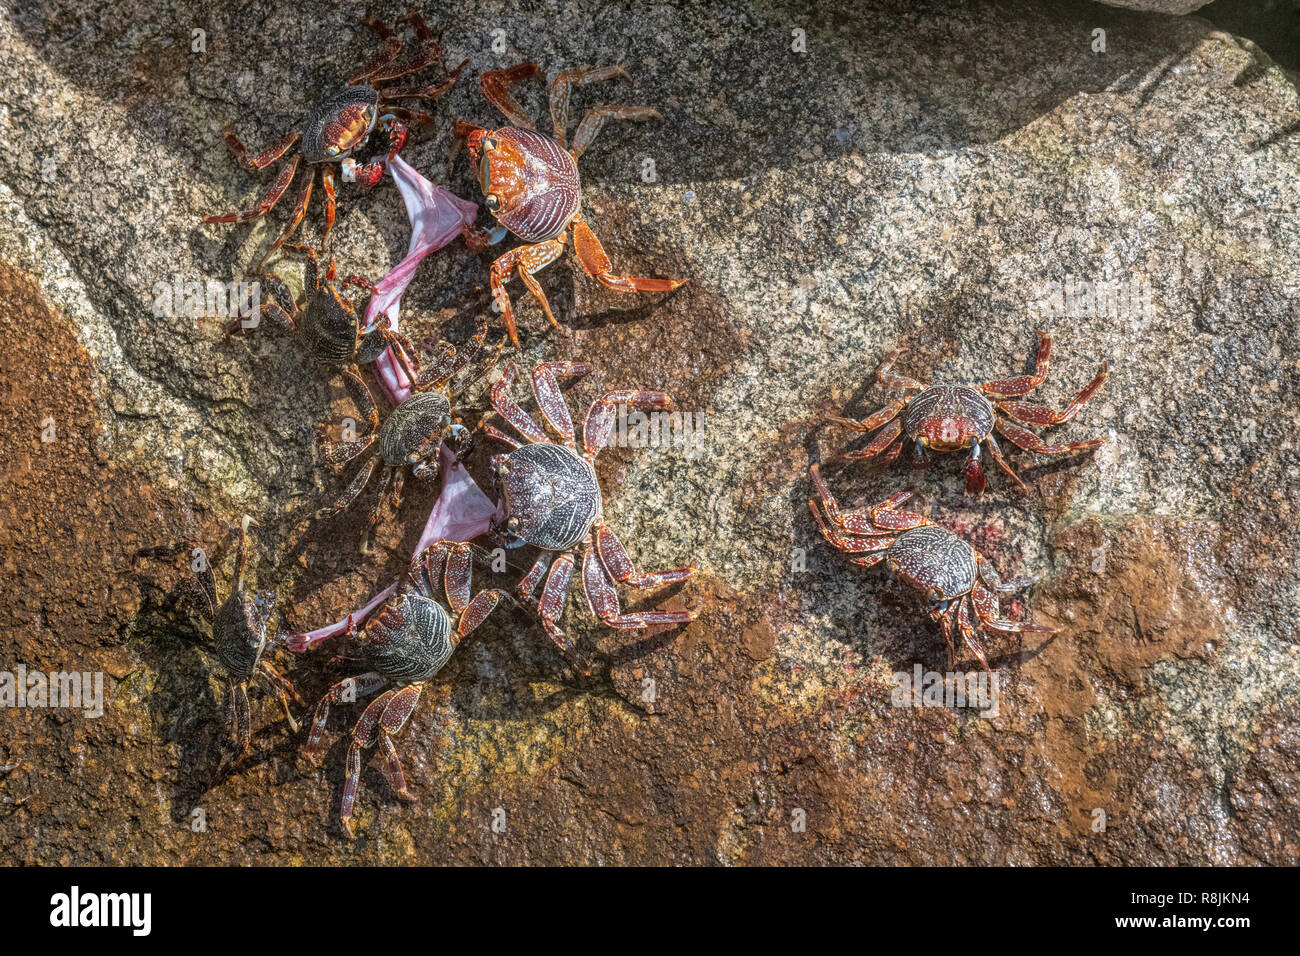 Sally Lightfoot crab - Grapsus Grapsus crabs tearing / eating fish remains - red rock crabs on colorful background - crabs with red claws scavengers - Stock Image